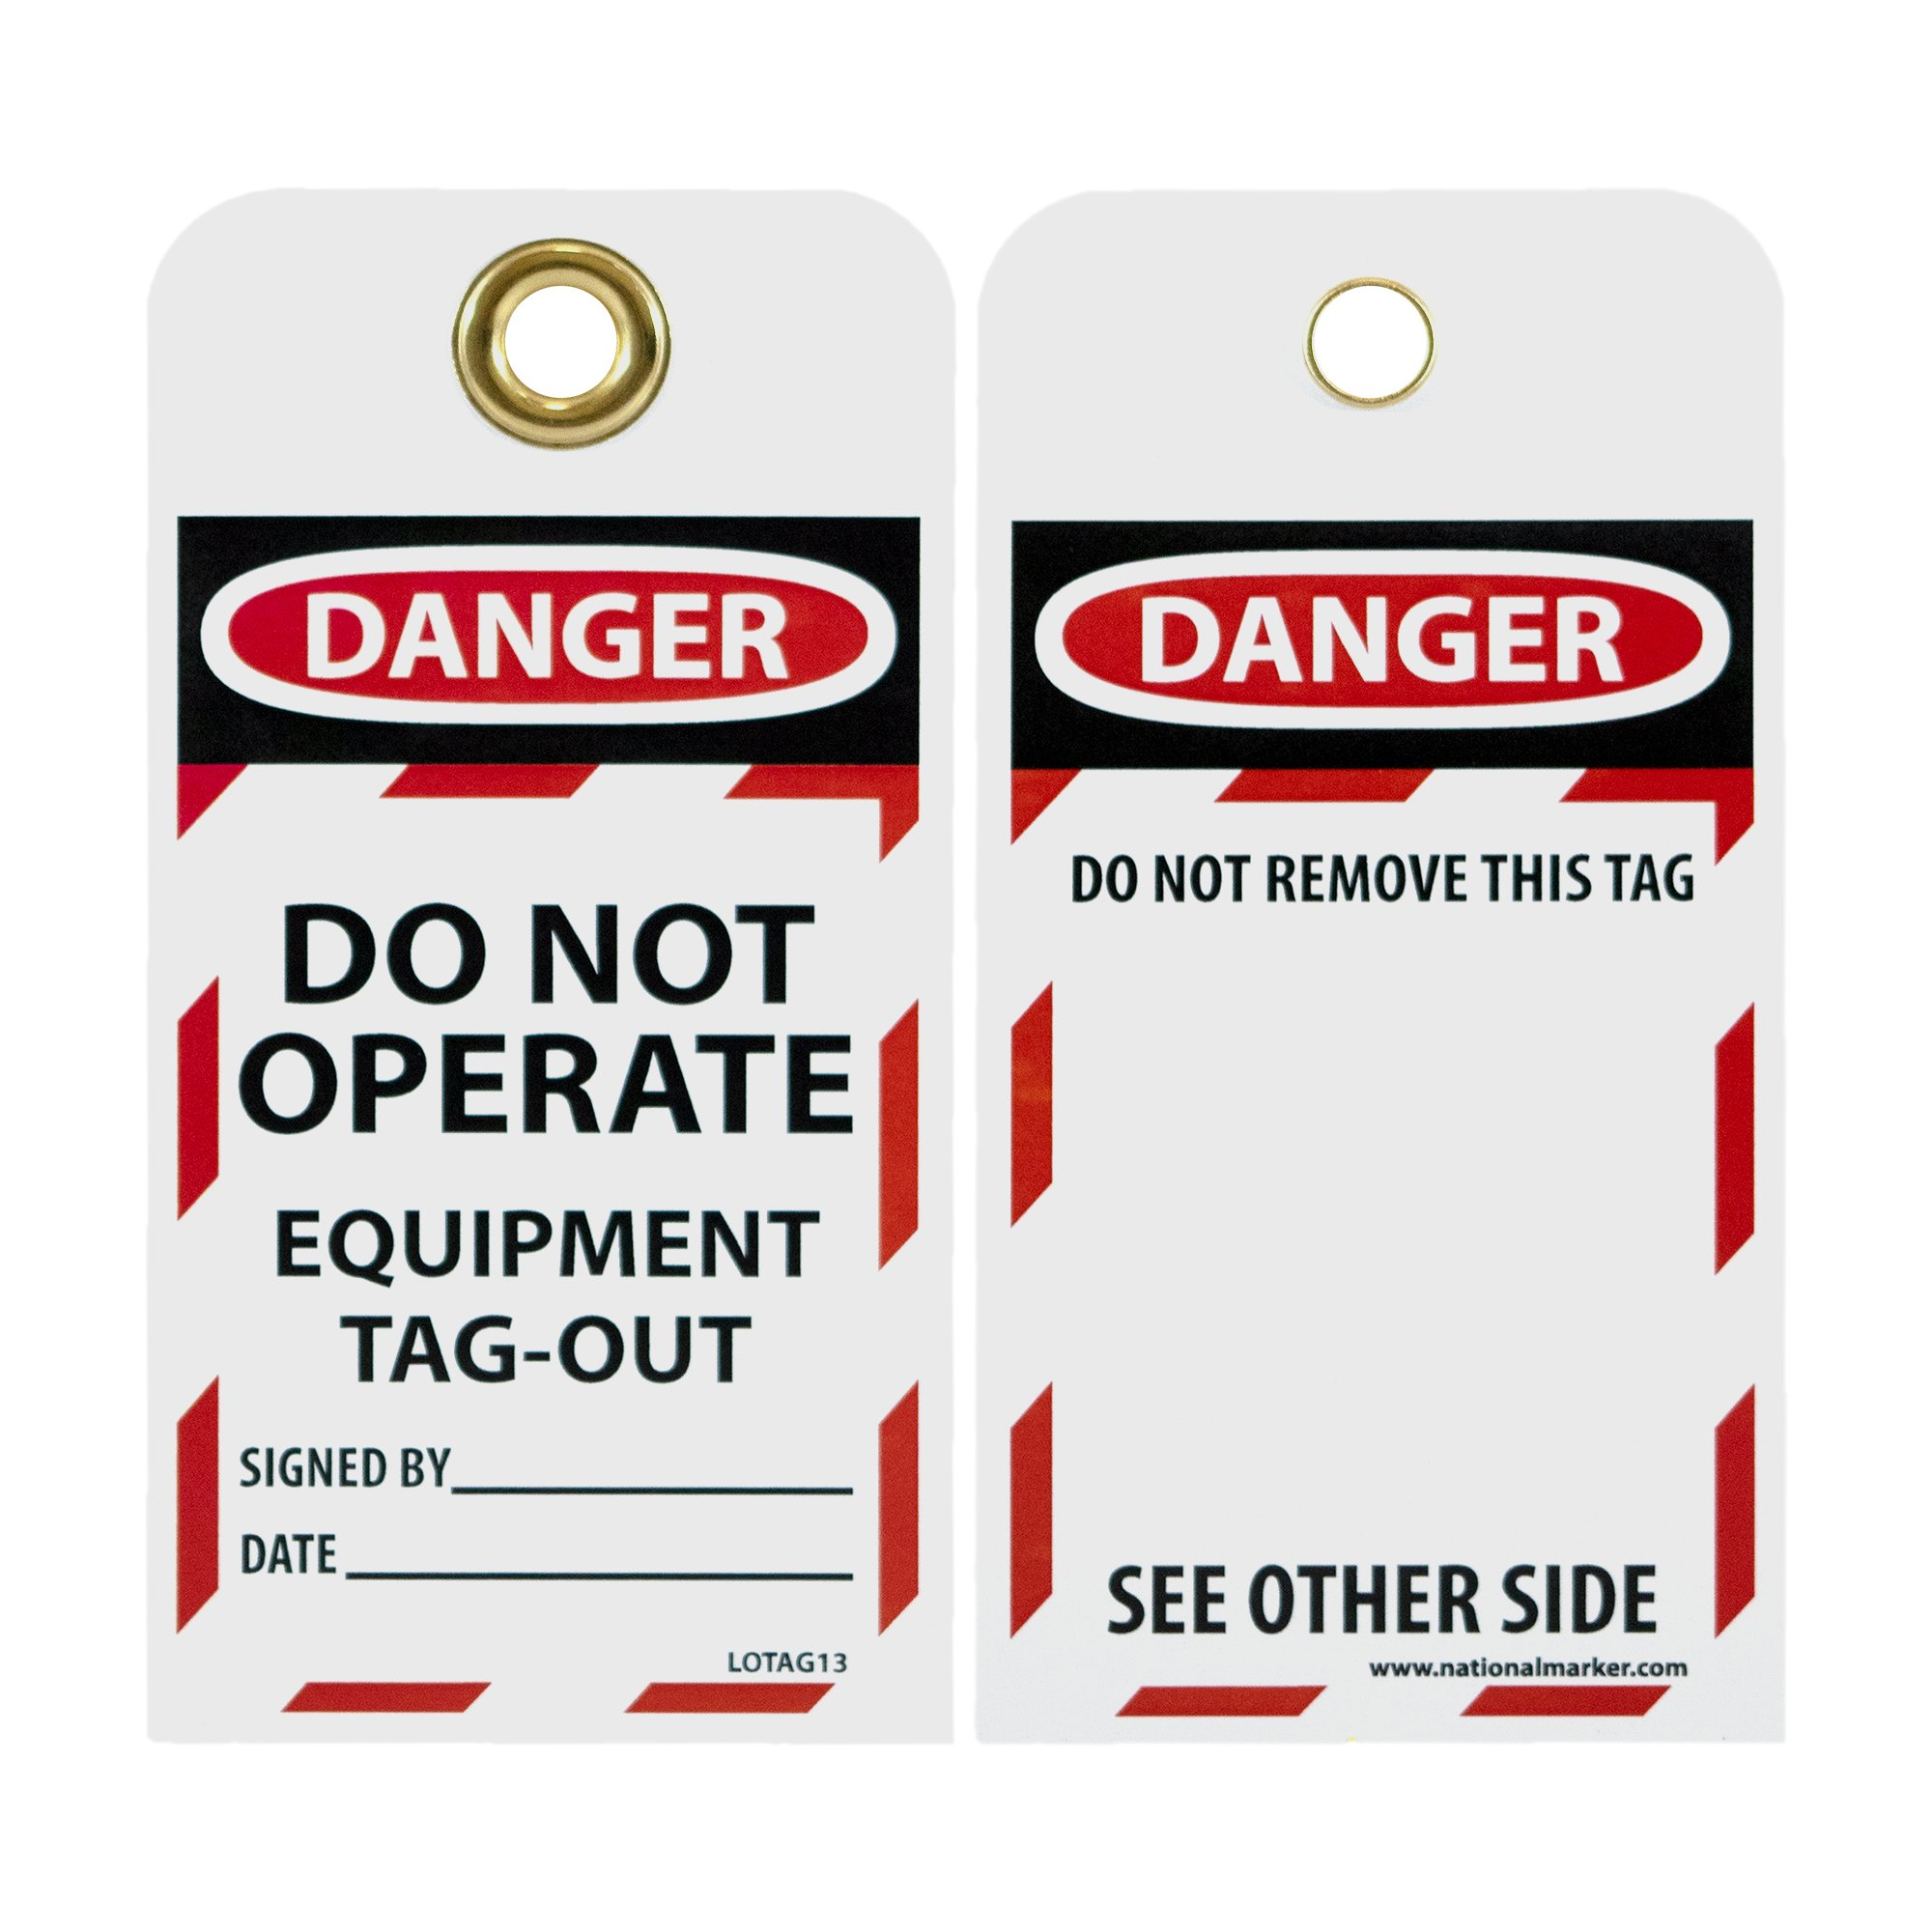 NMC LOTAG13 Lockout Tag, ''DANGER - DO NOT OPERATE - EQUIPMENT TAG-OUT,'' 6'' Height x 3'' Width, Unrippable Vinyl, Red/Black on White (Pack of 10) by NMC